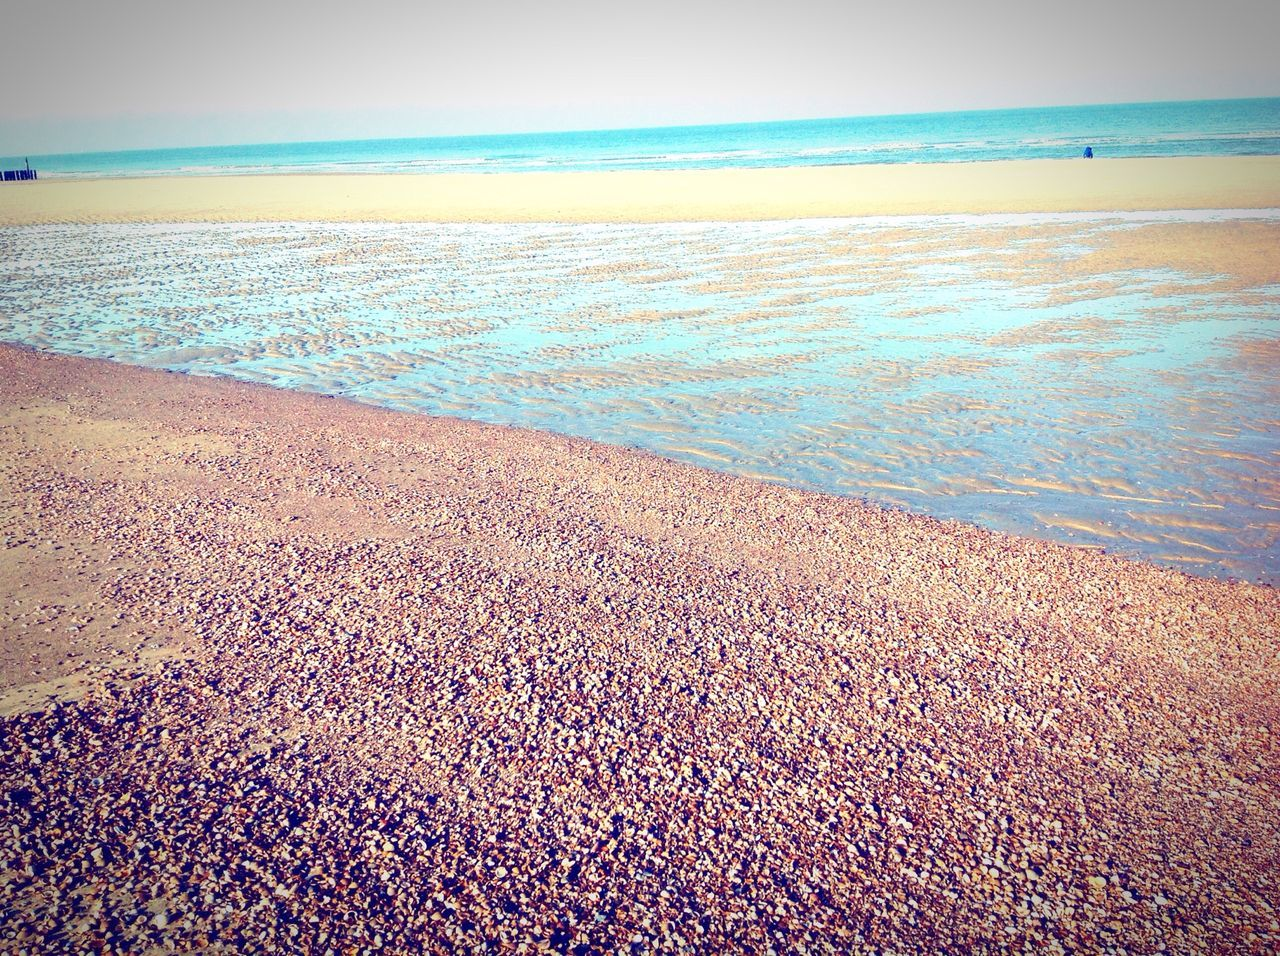 sea, beach, horizon over water, water, shore, scenics, nature, beauty in nature, sand, tranquil scene, tranquility, sky, outdoors, wave, day, no people, vacations, pebble beach